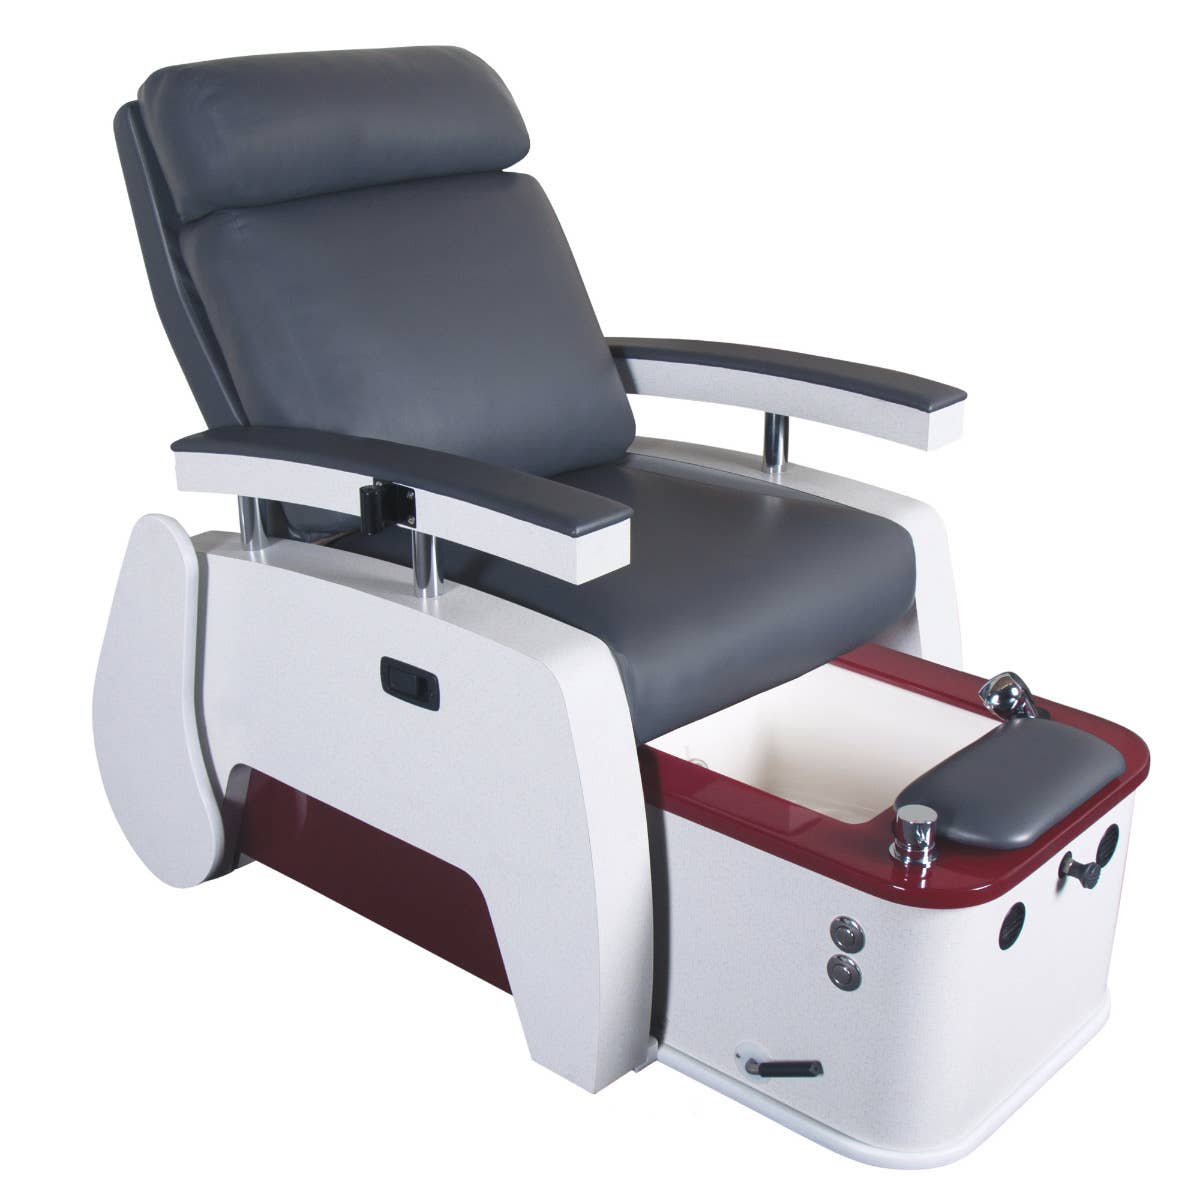 manicure-pedicure_pedicure-chairs_5th-avenue-with-plumbed-footbath_03